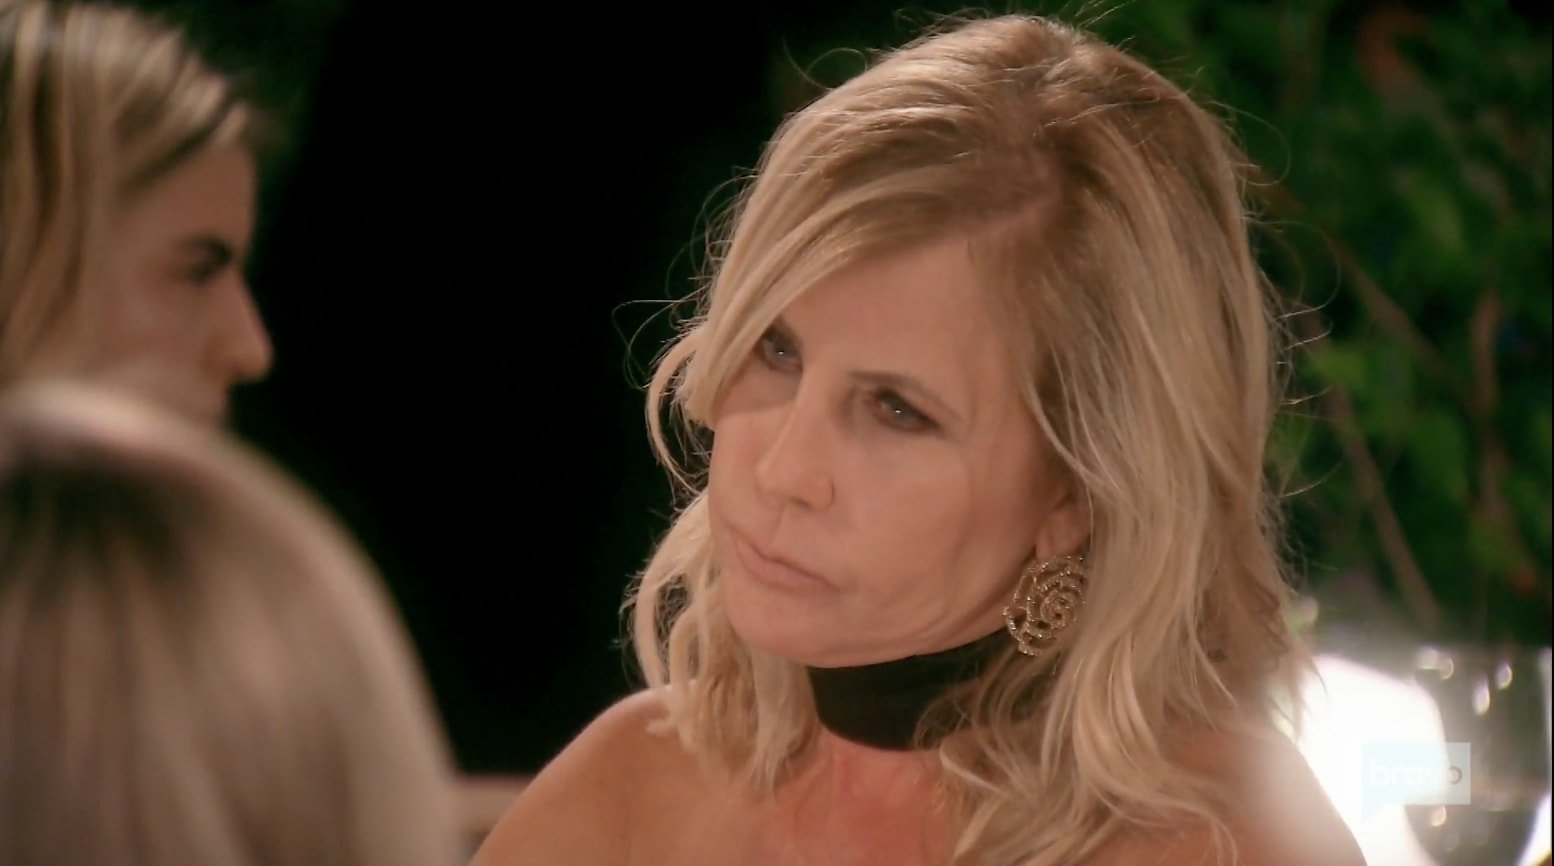 Vicki Gunvalson Accuses Steve Lodge Of Cheating On Her; Steve Says They Broke Up Last December And Vicki Wouldn't Accept It